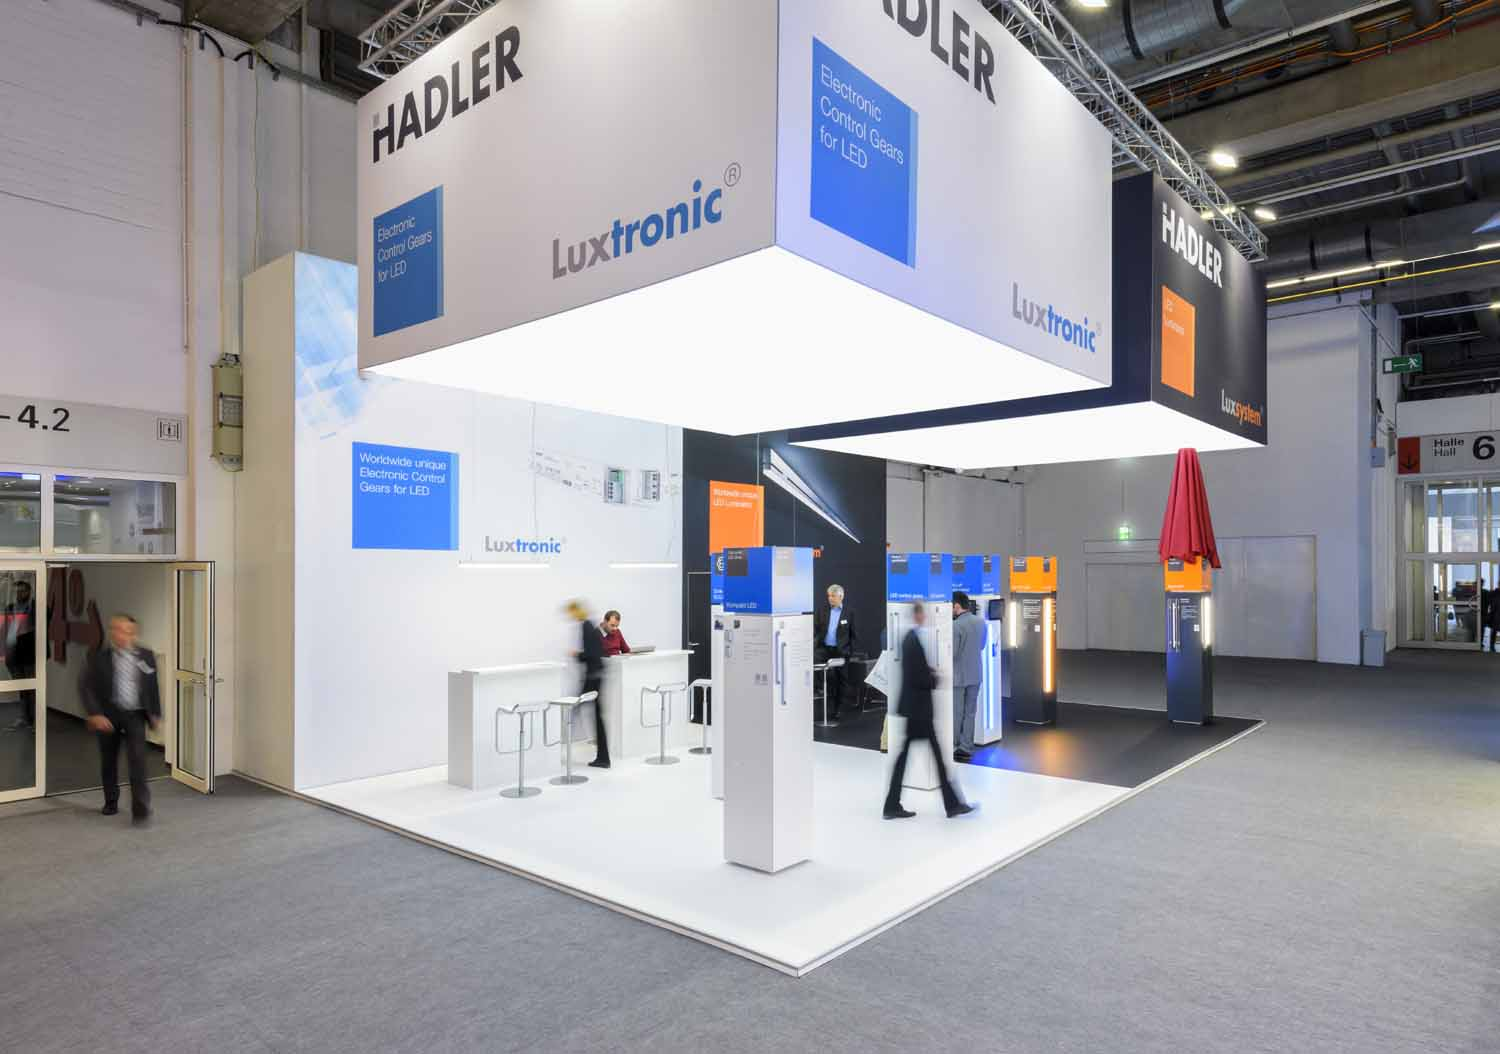 Corner Exhibition Stands Near Me : Exhibition stand lighting near me inspirational